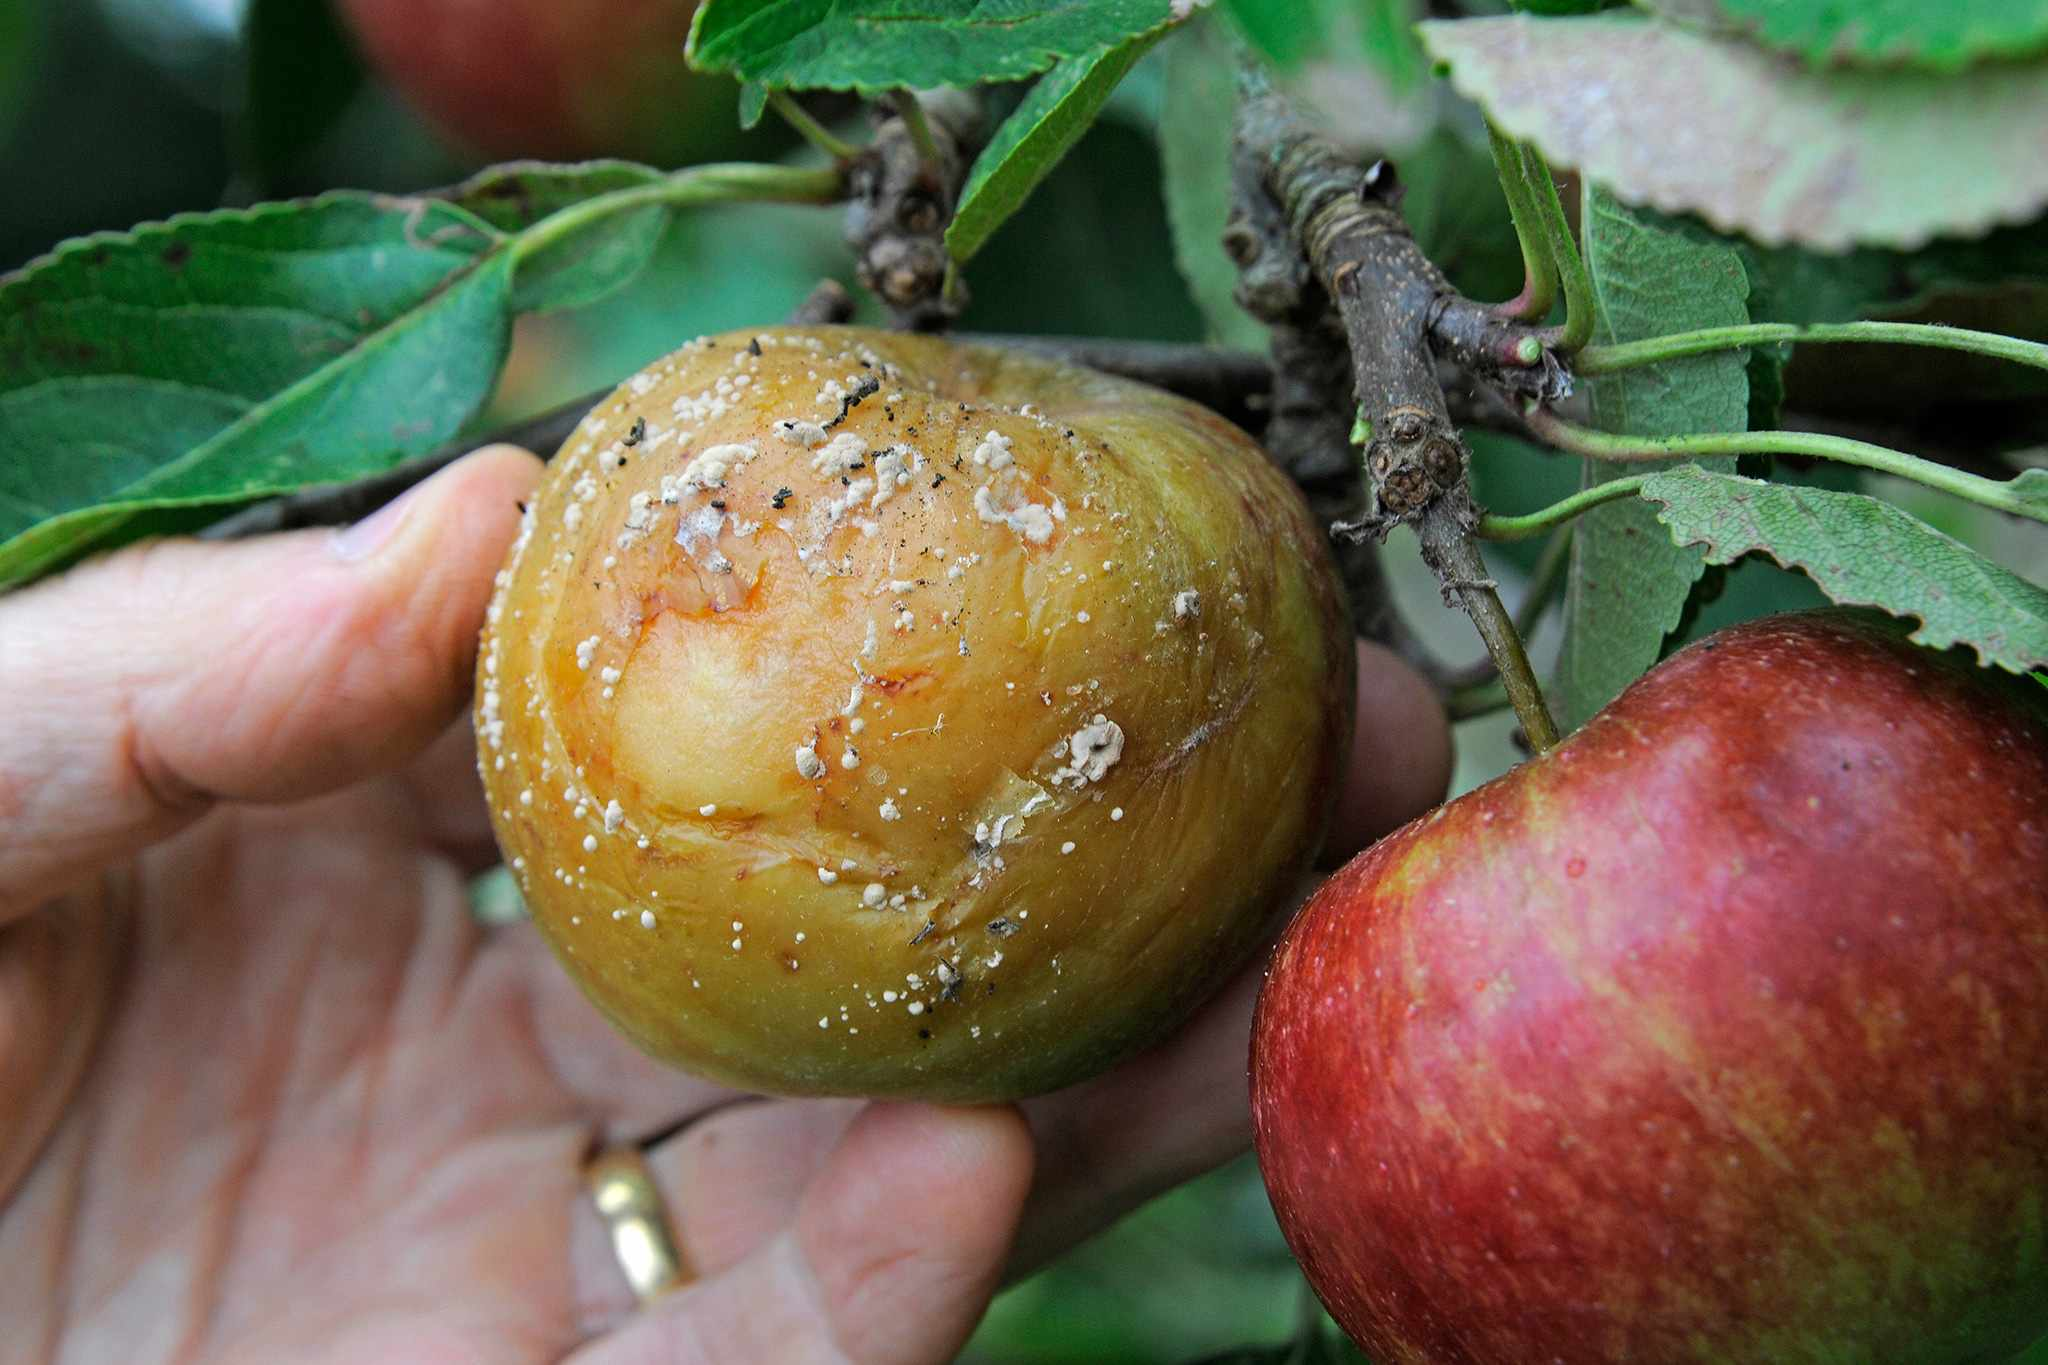 An apple affected by brown rot